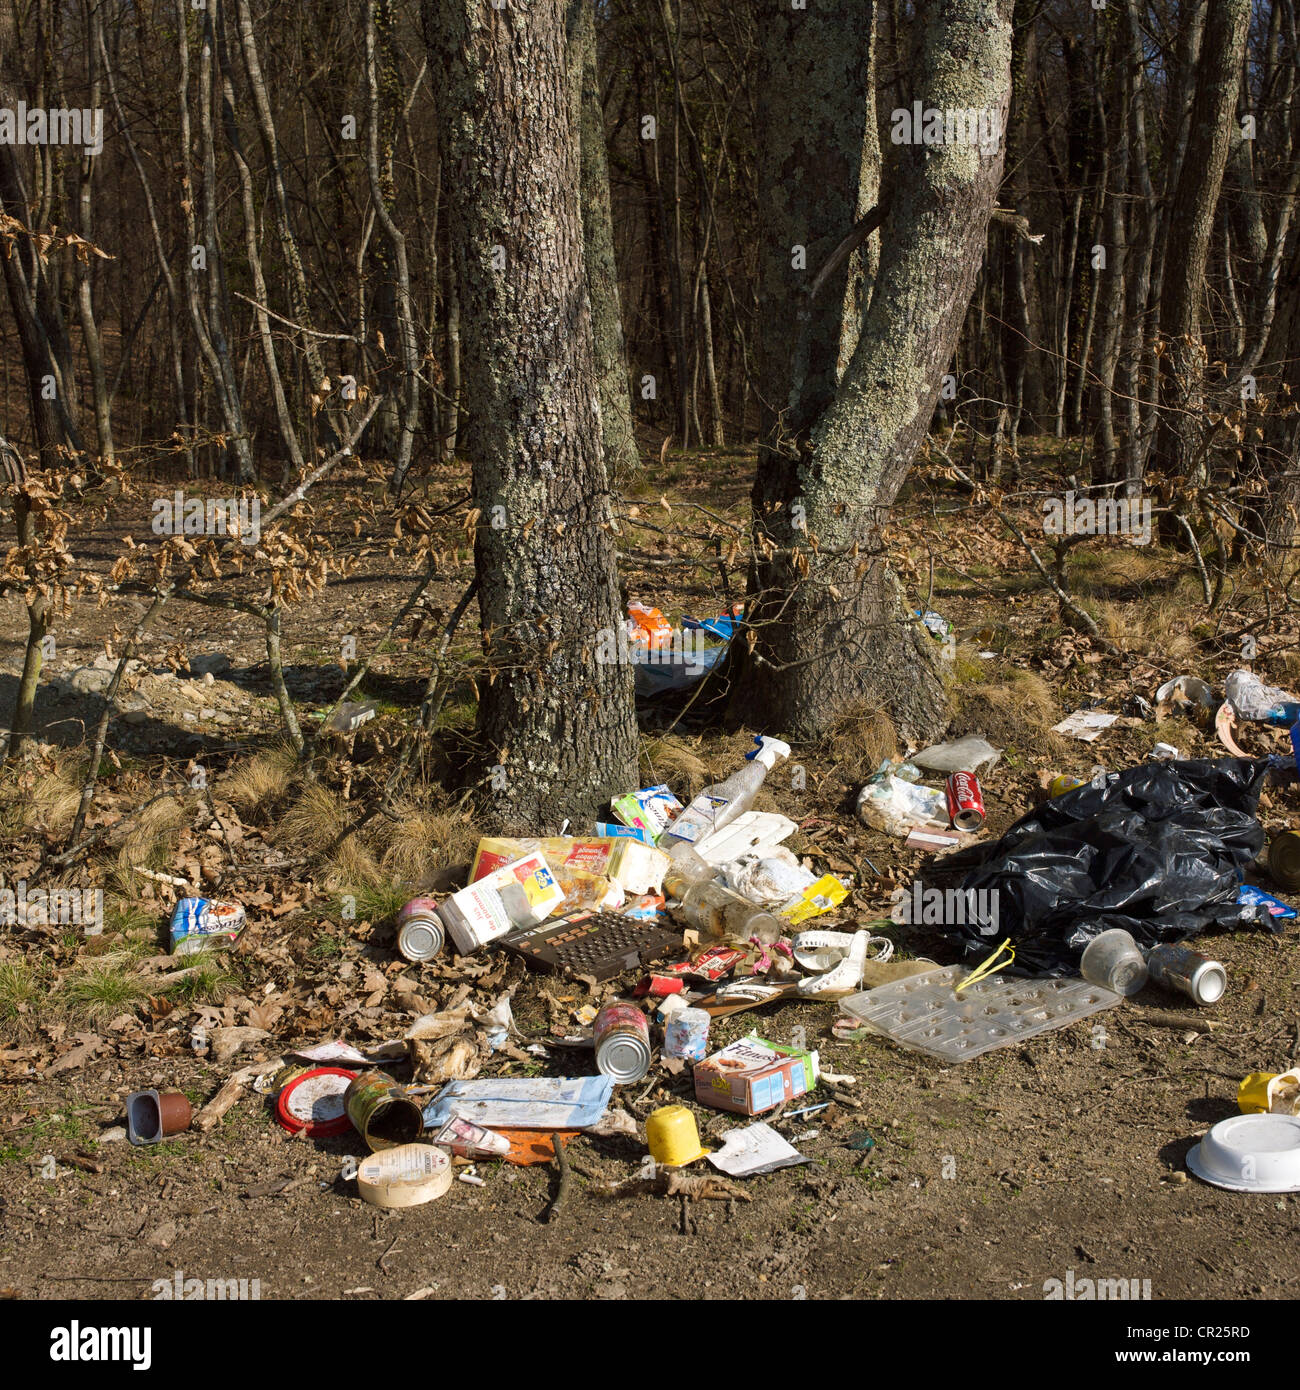 Illegally dumped waste - fly-tipping / fly tipping - in a forest. - Stock Image